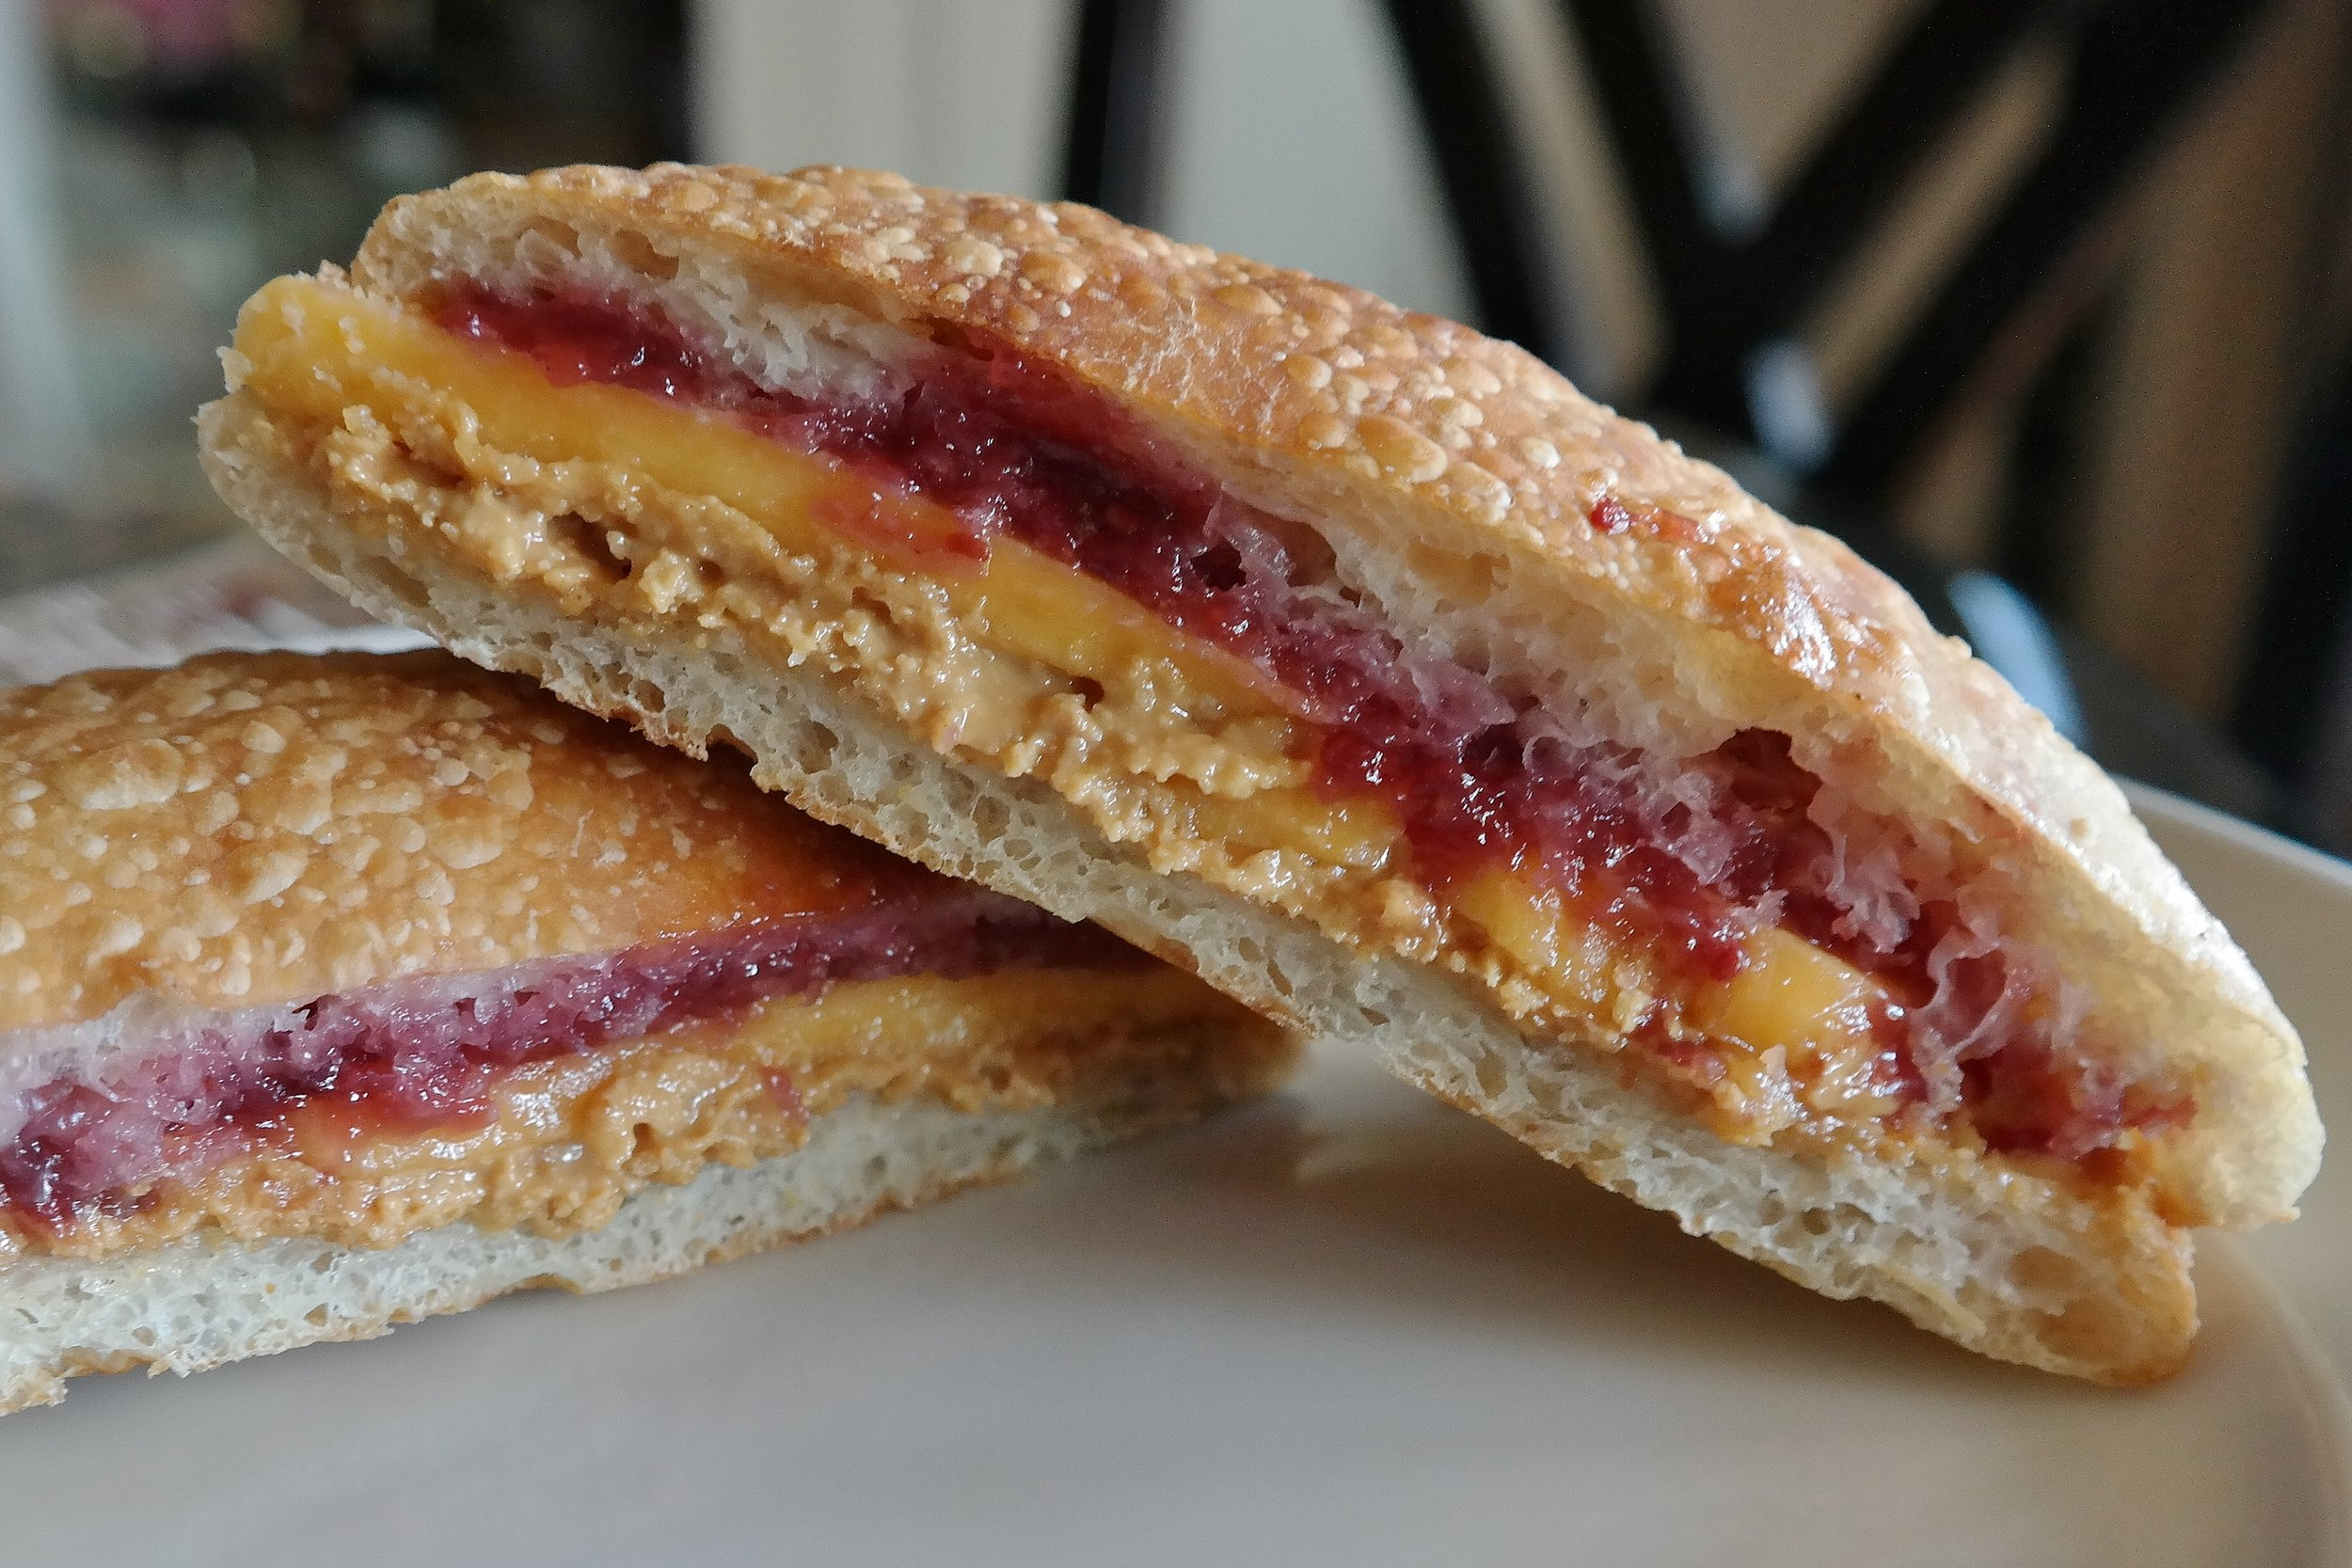 Housemade peanut butter with strawberry jelly and Tillamook sharp cheddar on ciabatta